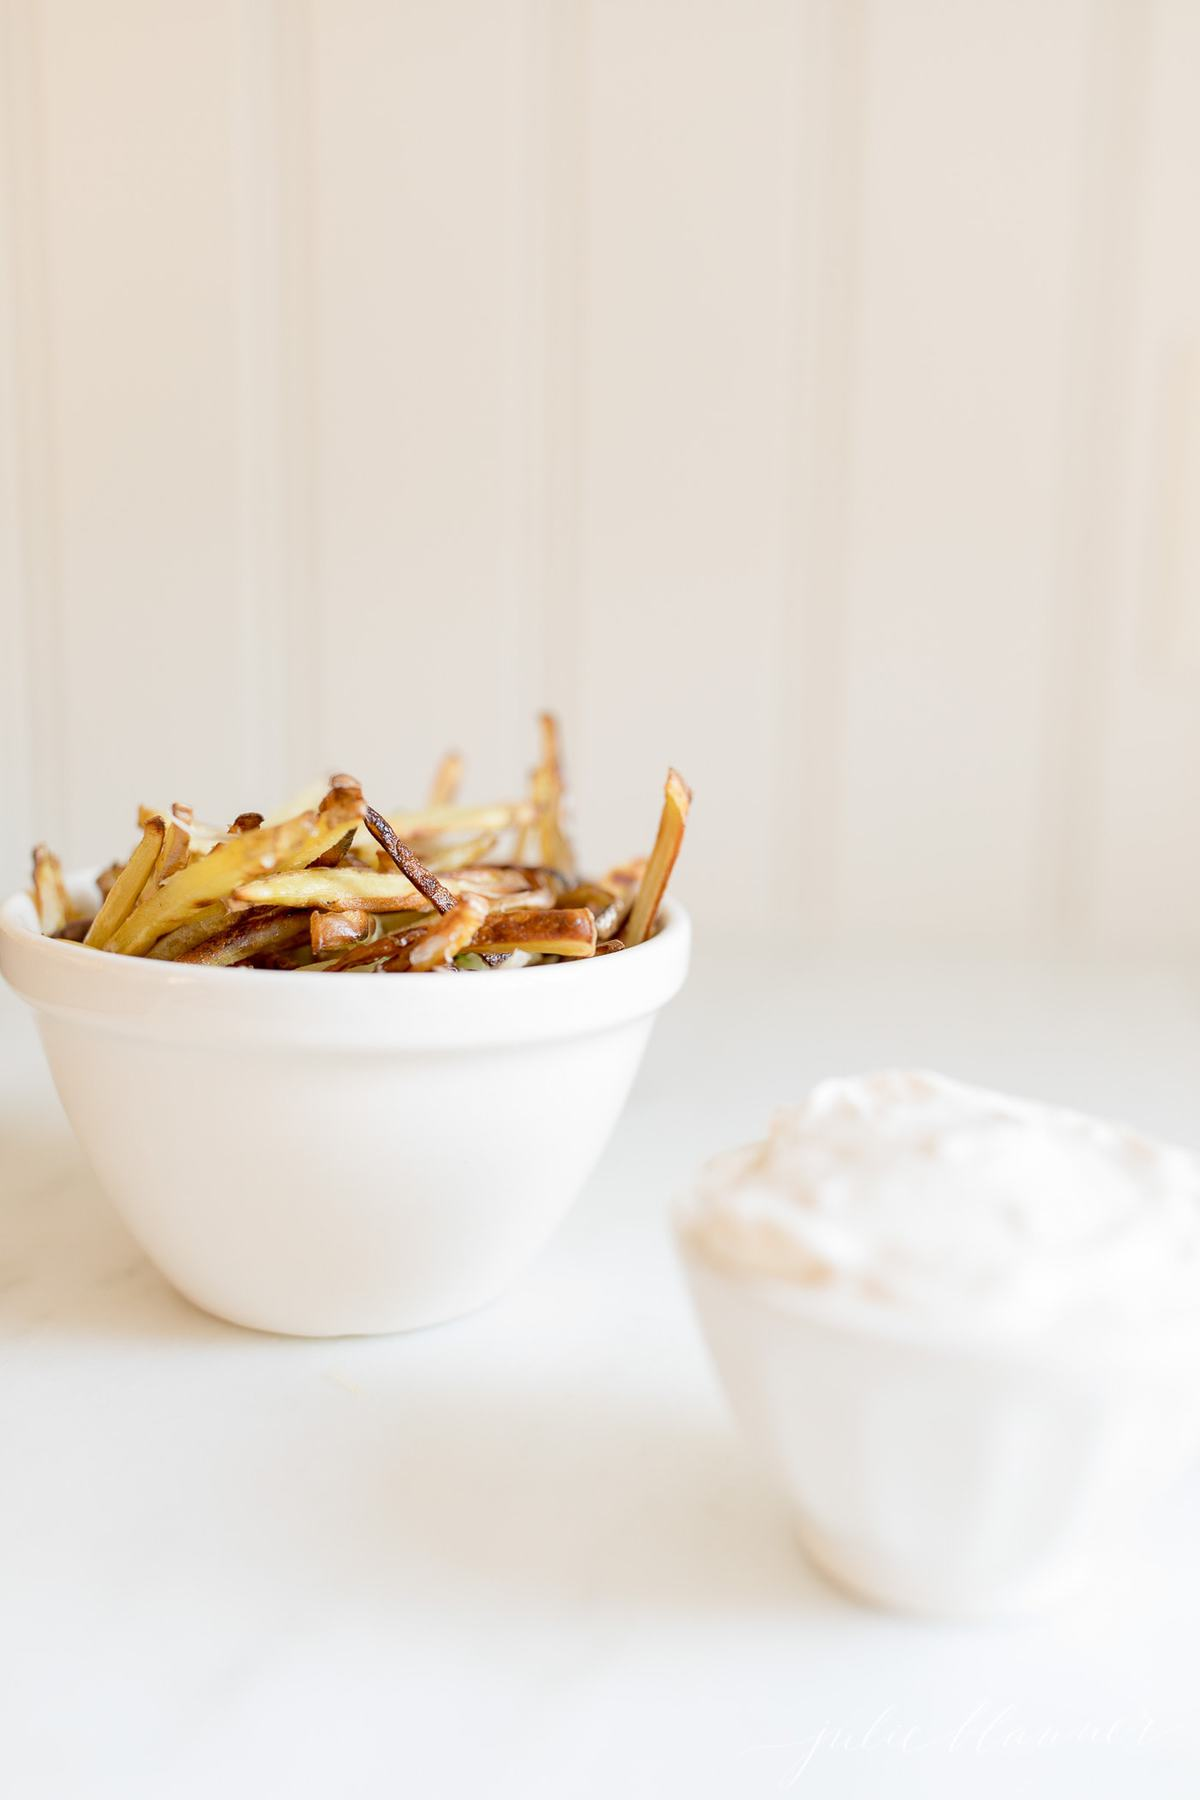 truffle fries in a white bowl